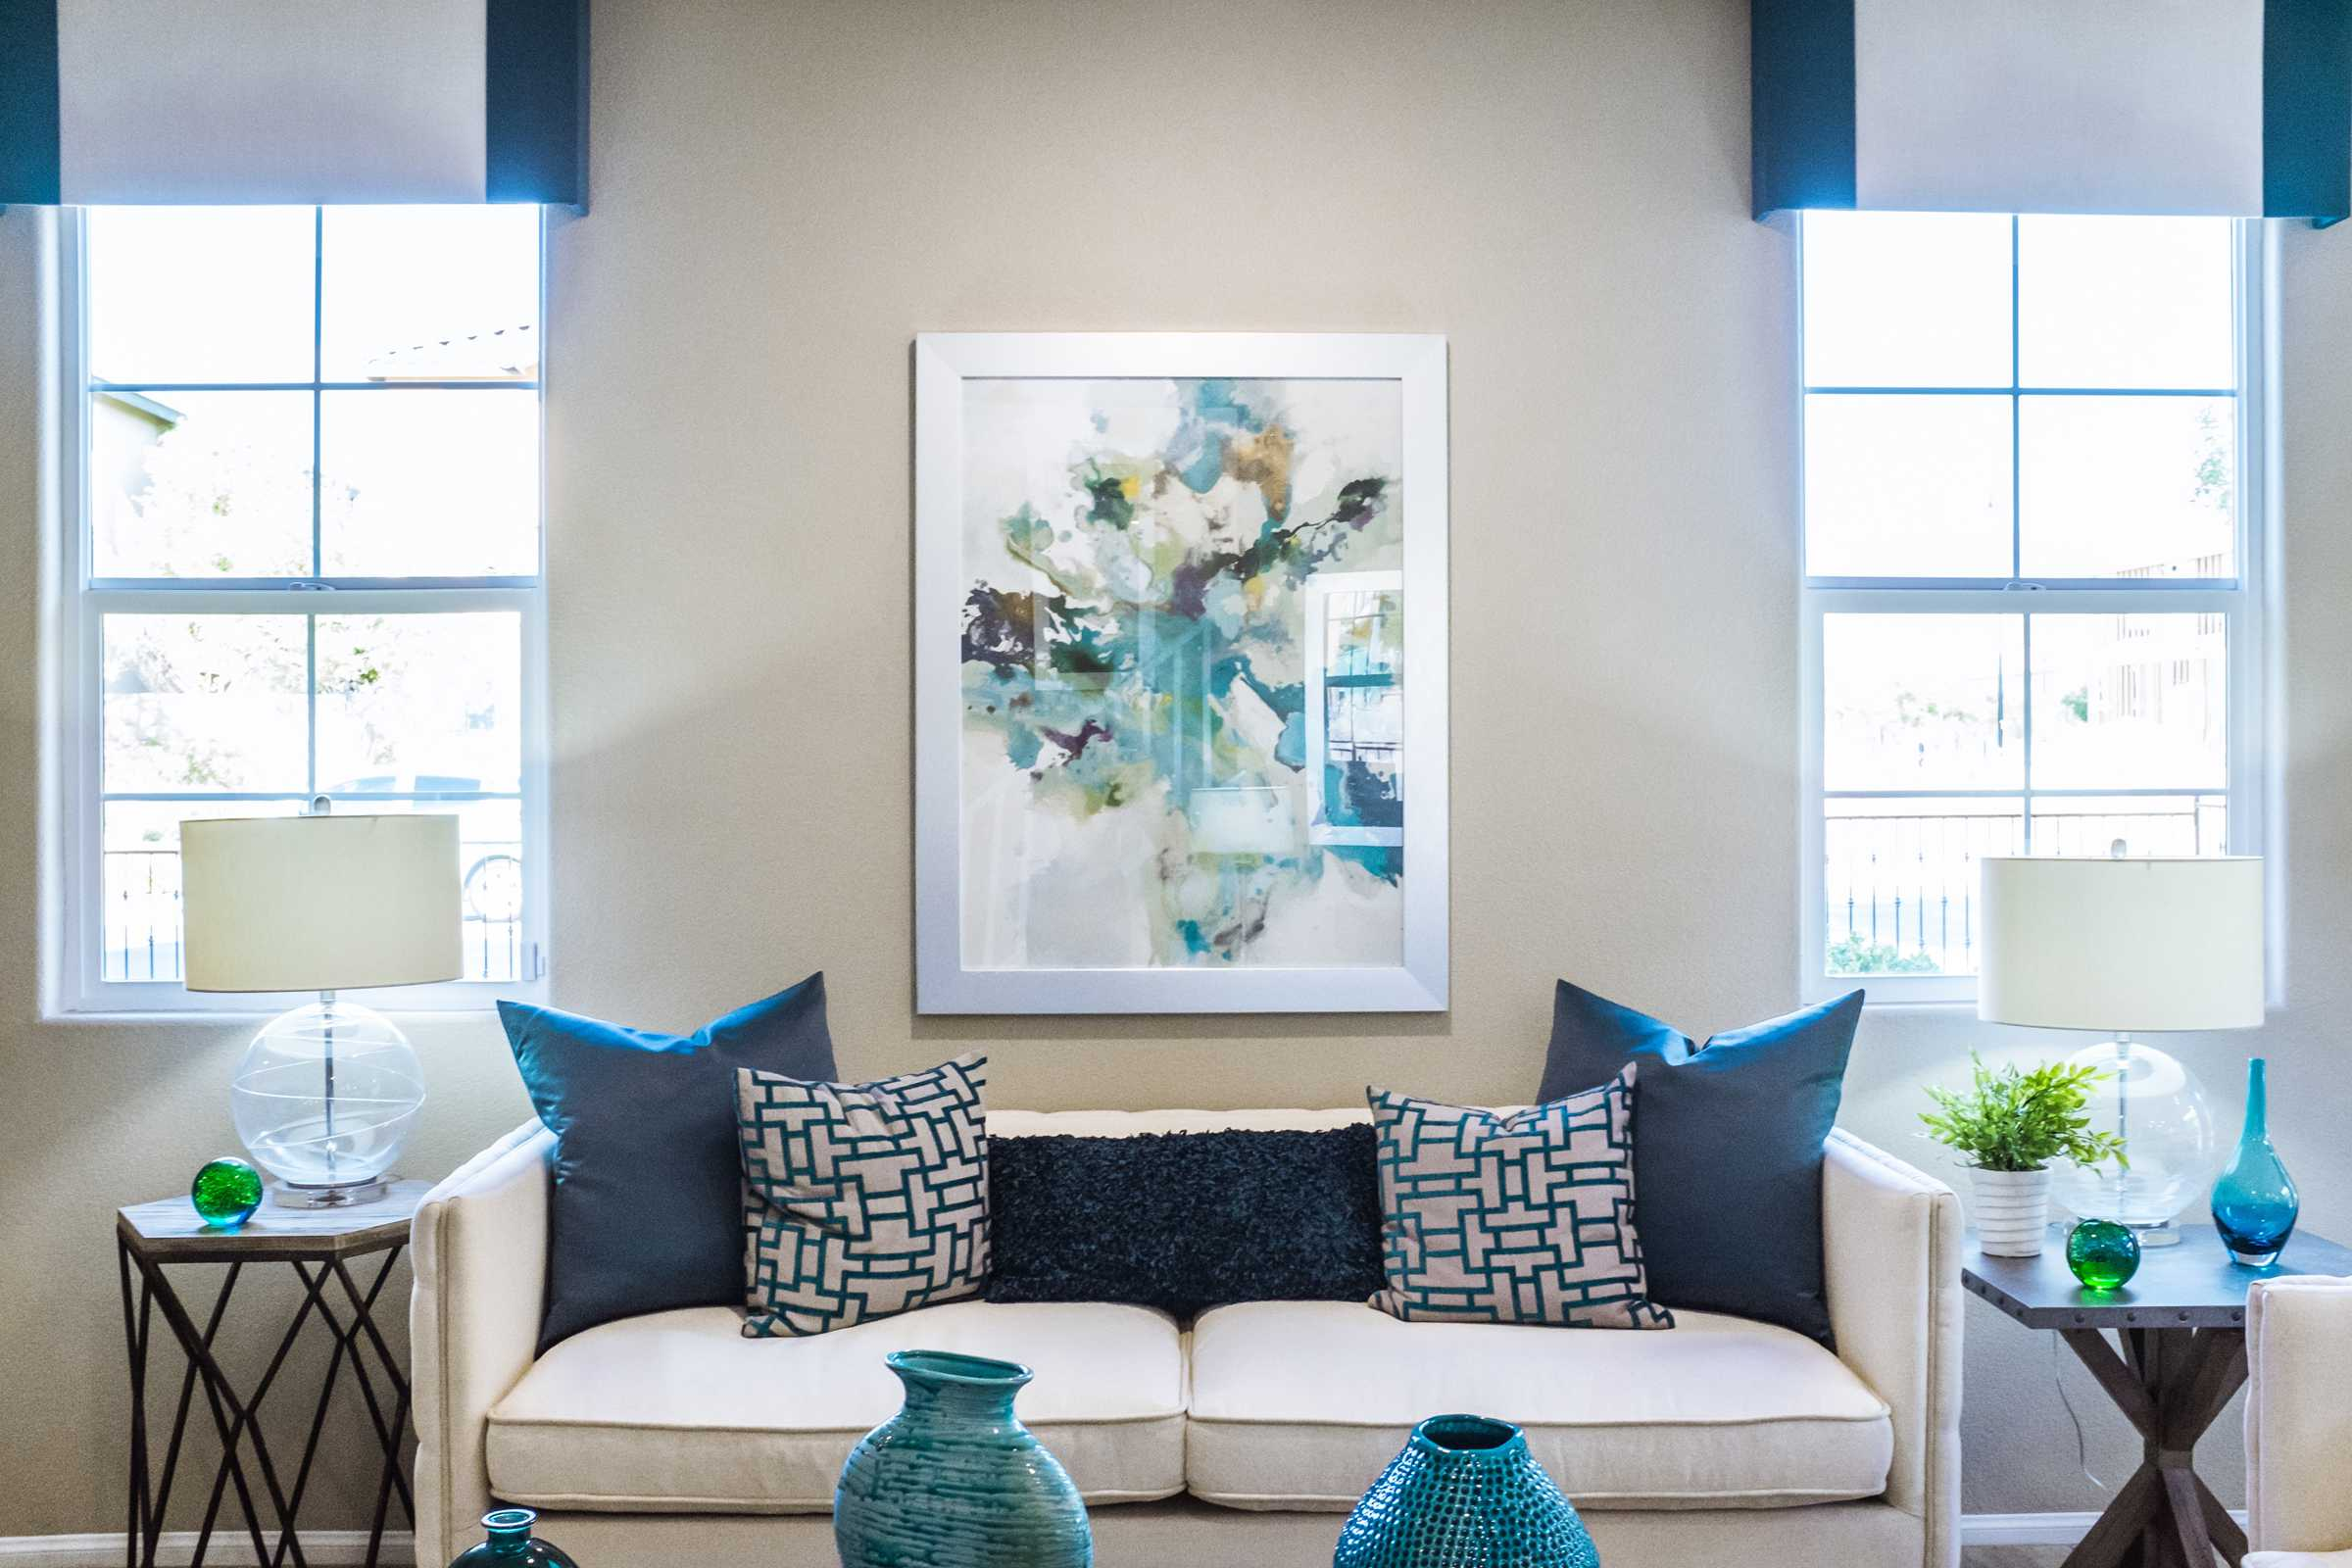 A white couch with blue pillows, two tables and a picture frame on the wall.